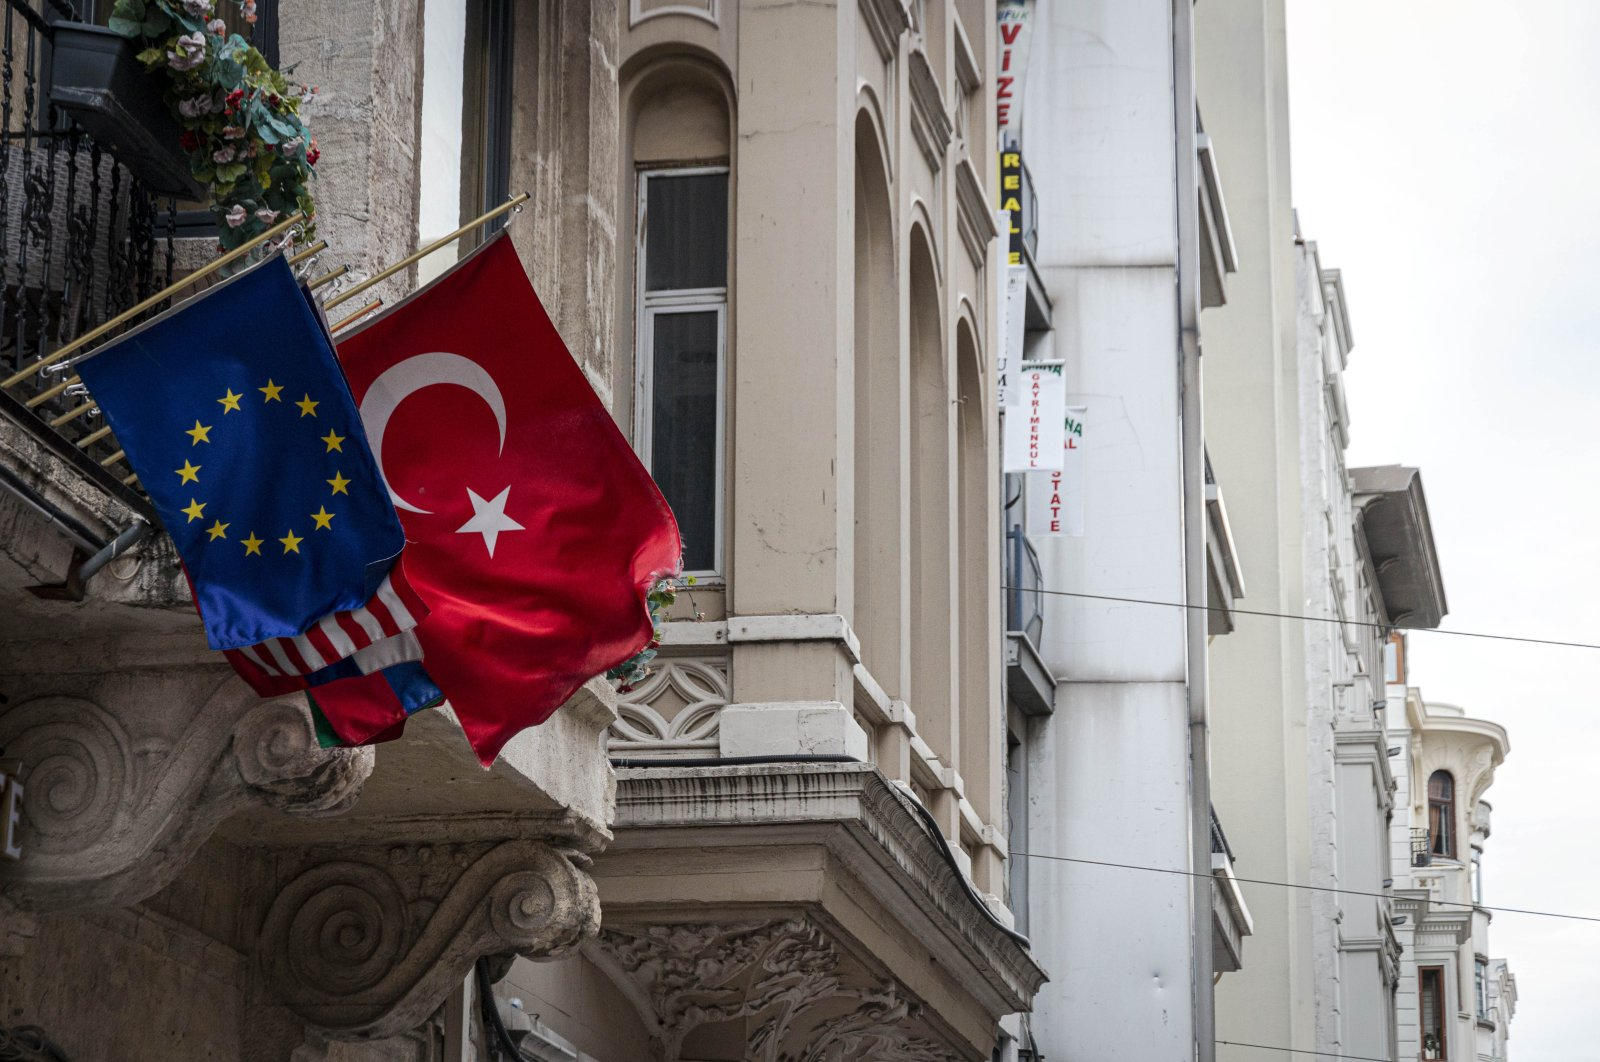 The flags of Turkey and the European Union fly side by side on Istiklal Avenue, Istanbul, Turkey, Sept. 5, 2020. (Photo by Getty Images)